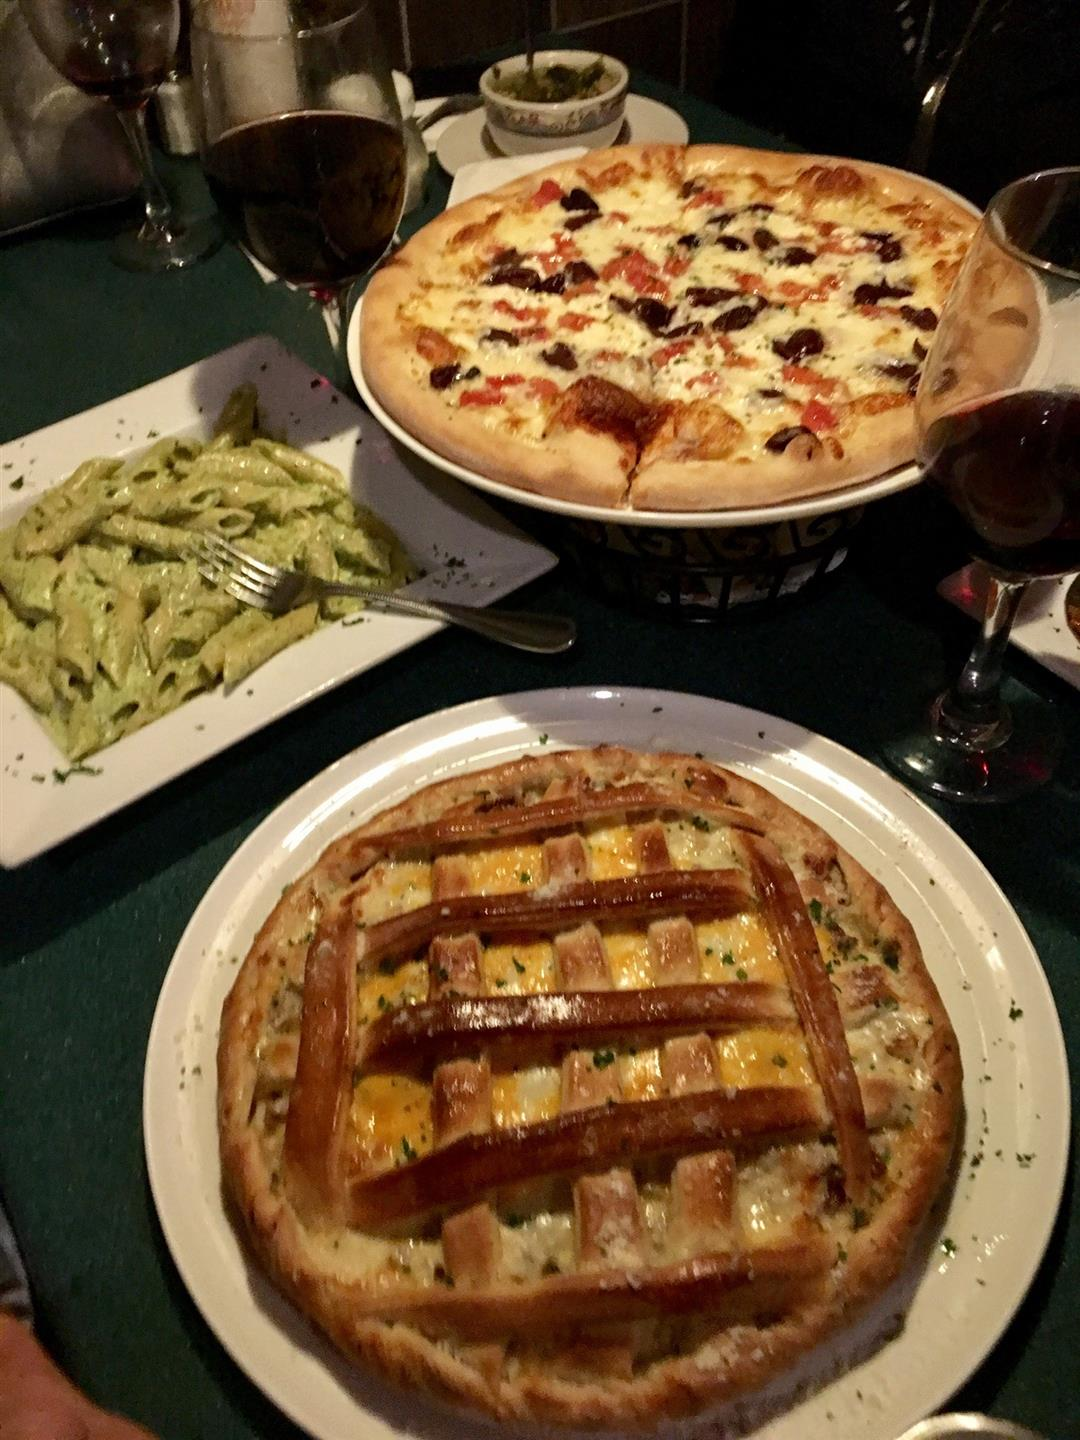 assorted pizzas and pastas